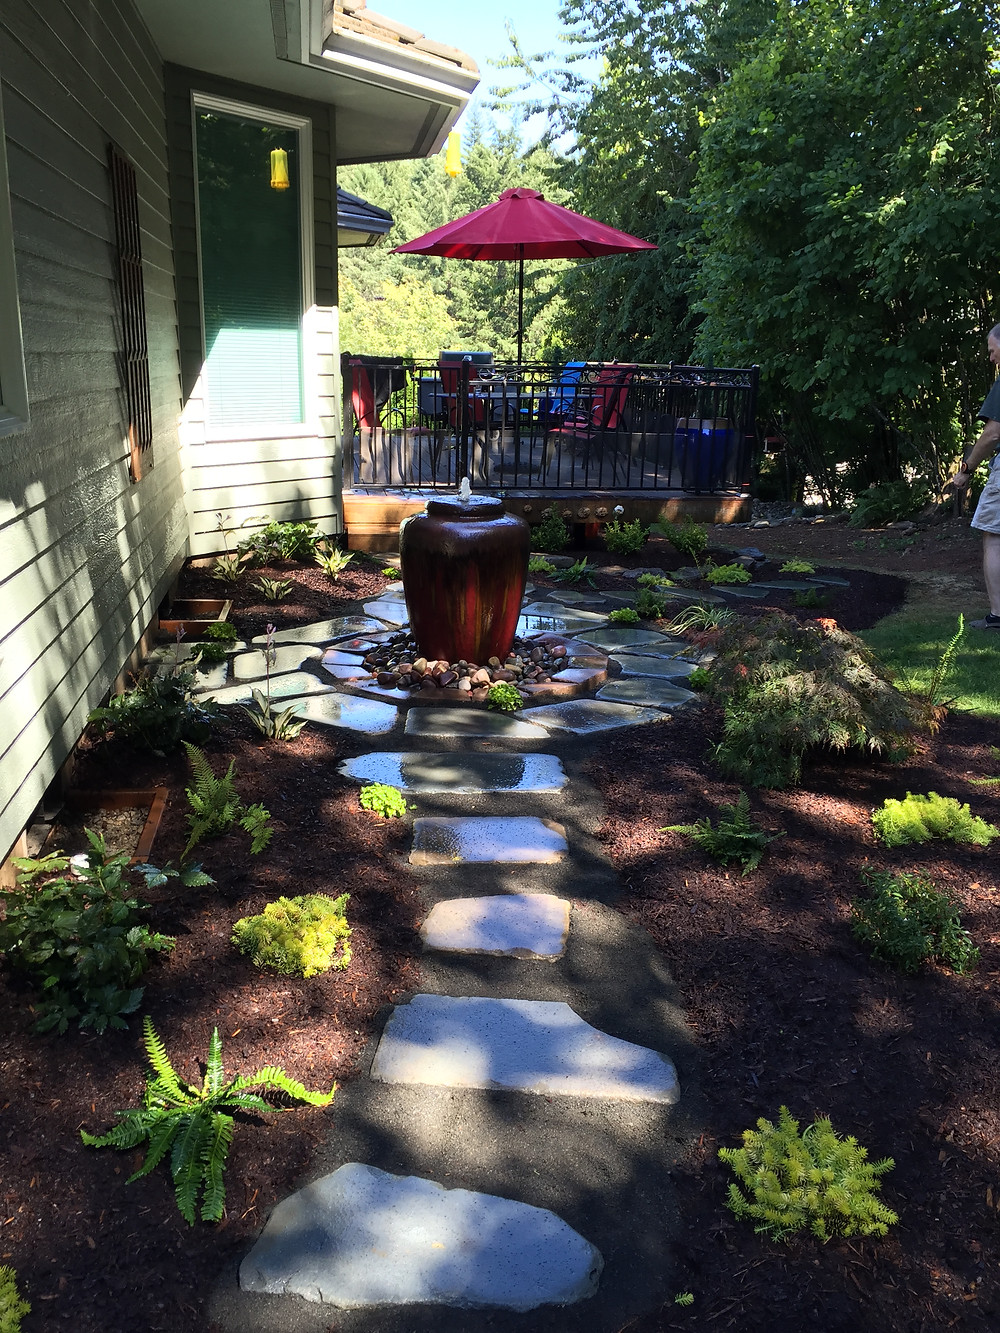 Blue stone path around water feature to patio.